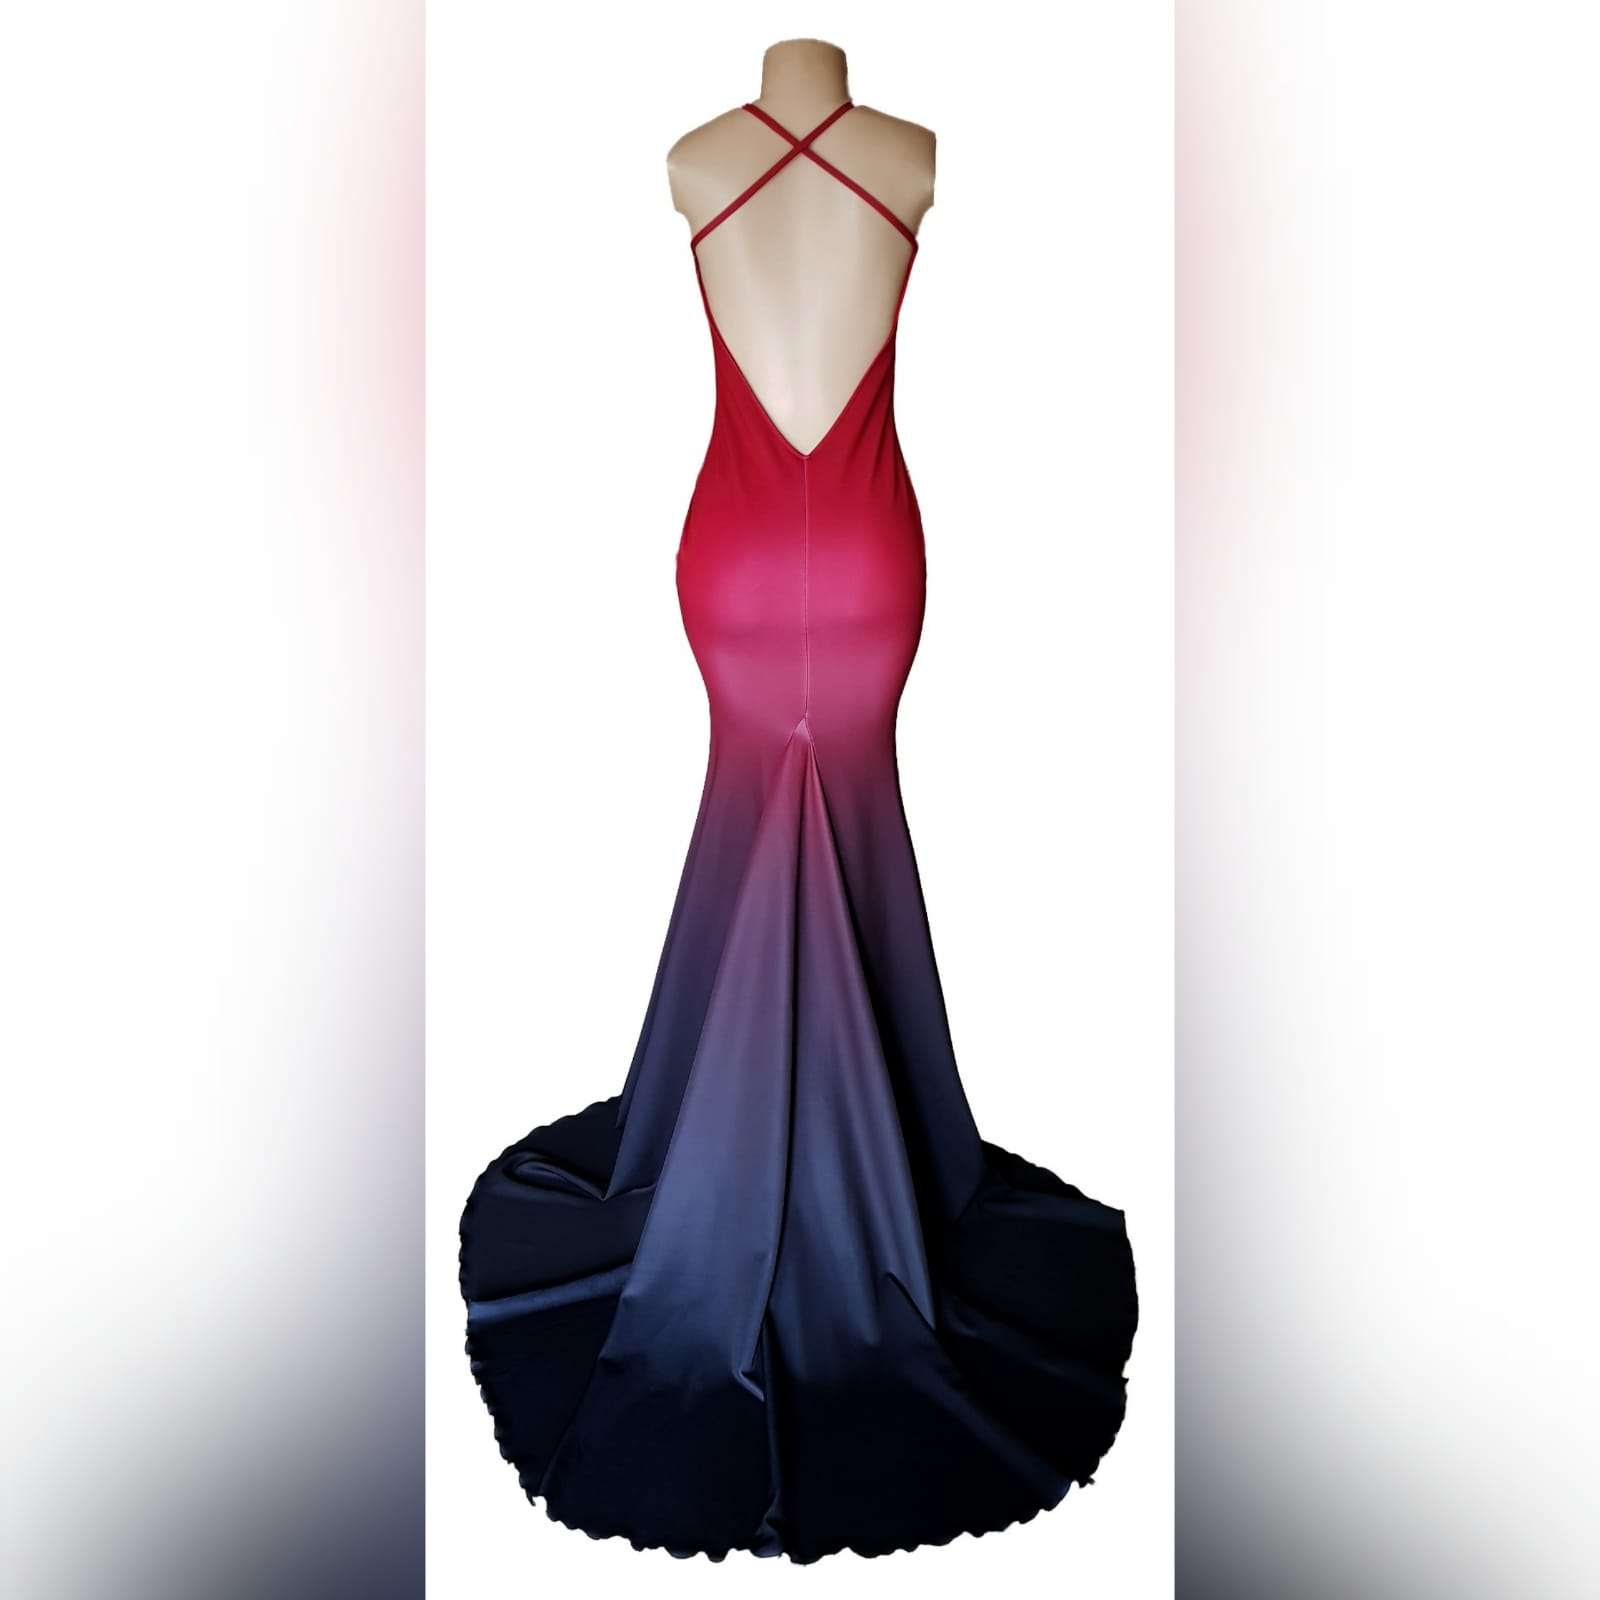 Red black ombre mermaid prom dress 6 red and black ombre mermaid sexy prom dress. With a v neckline, low open back with crossed shoulder straps and long train.